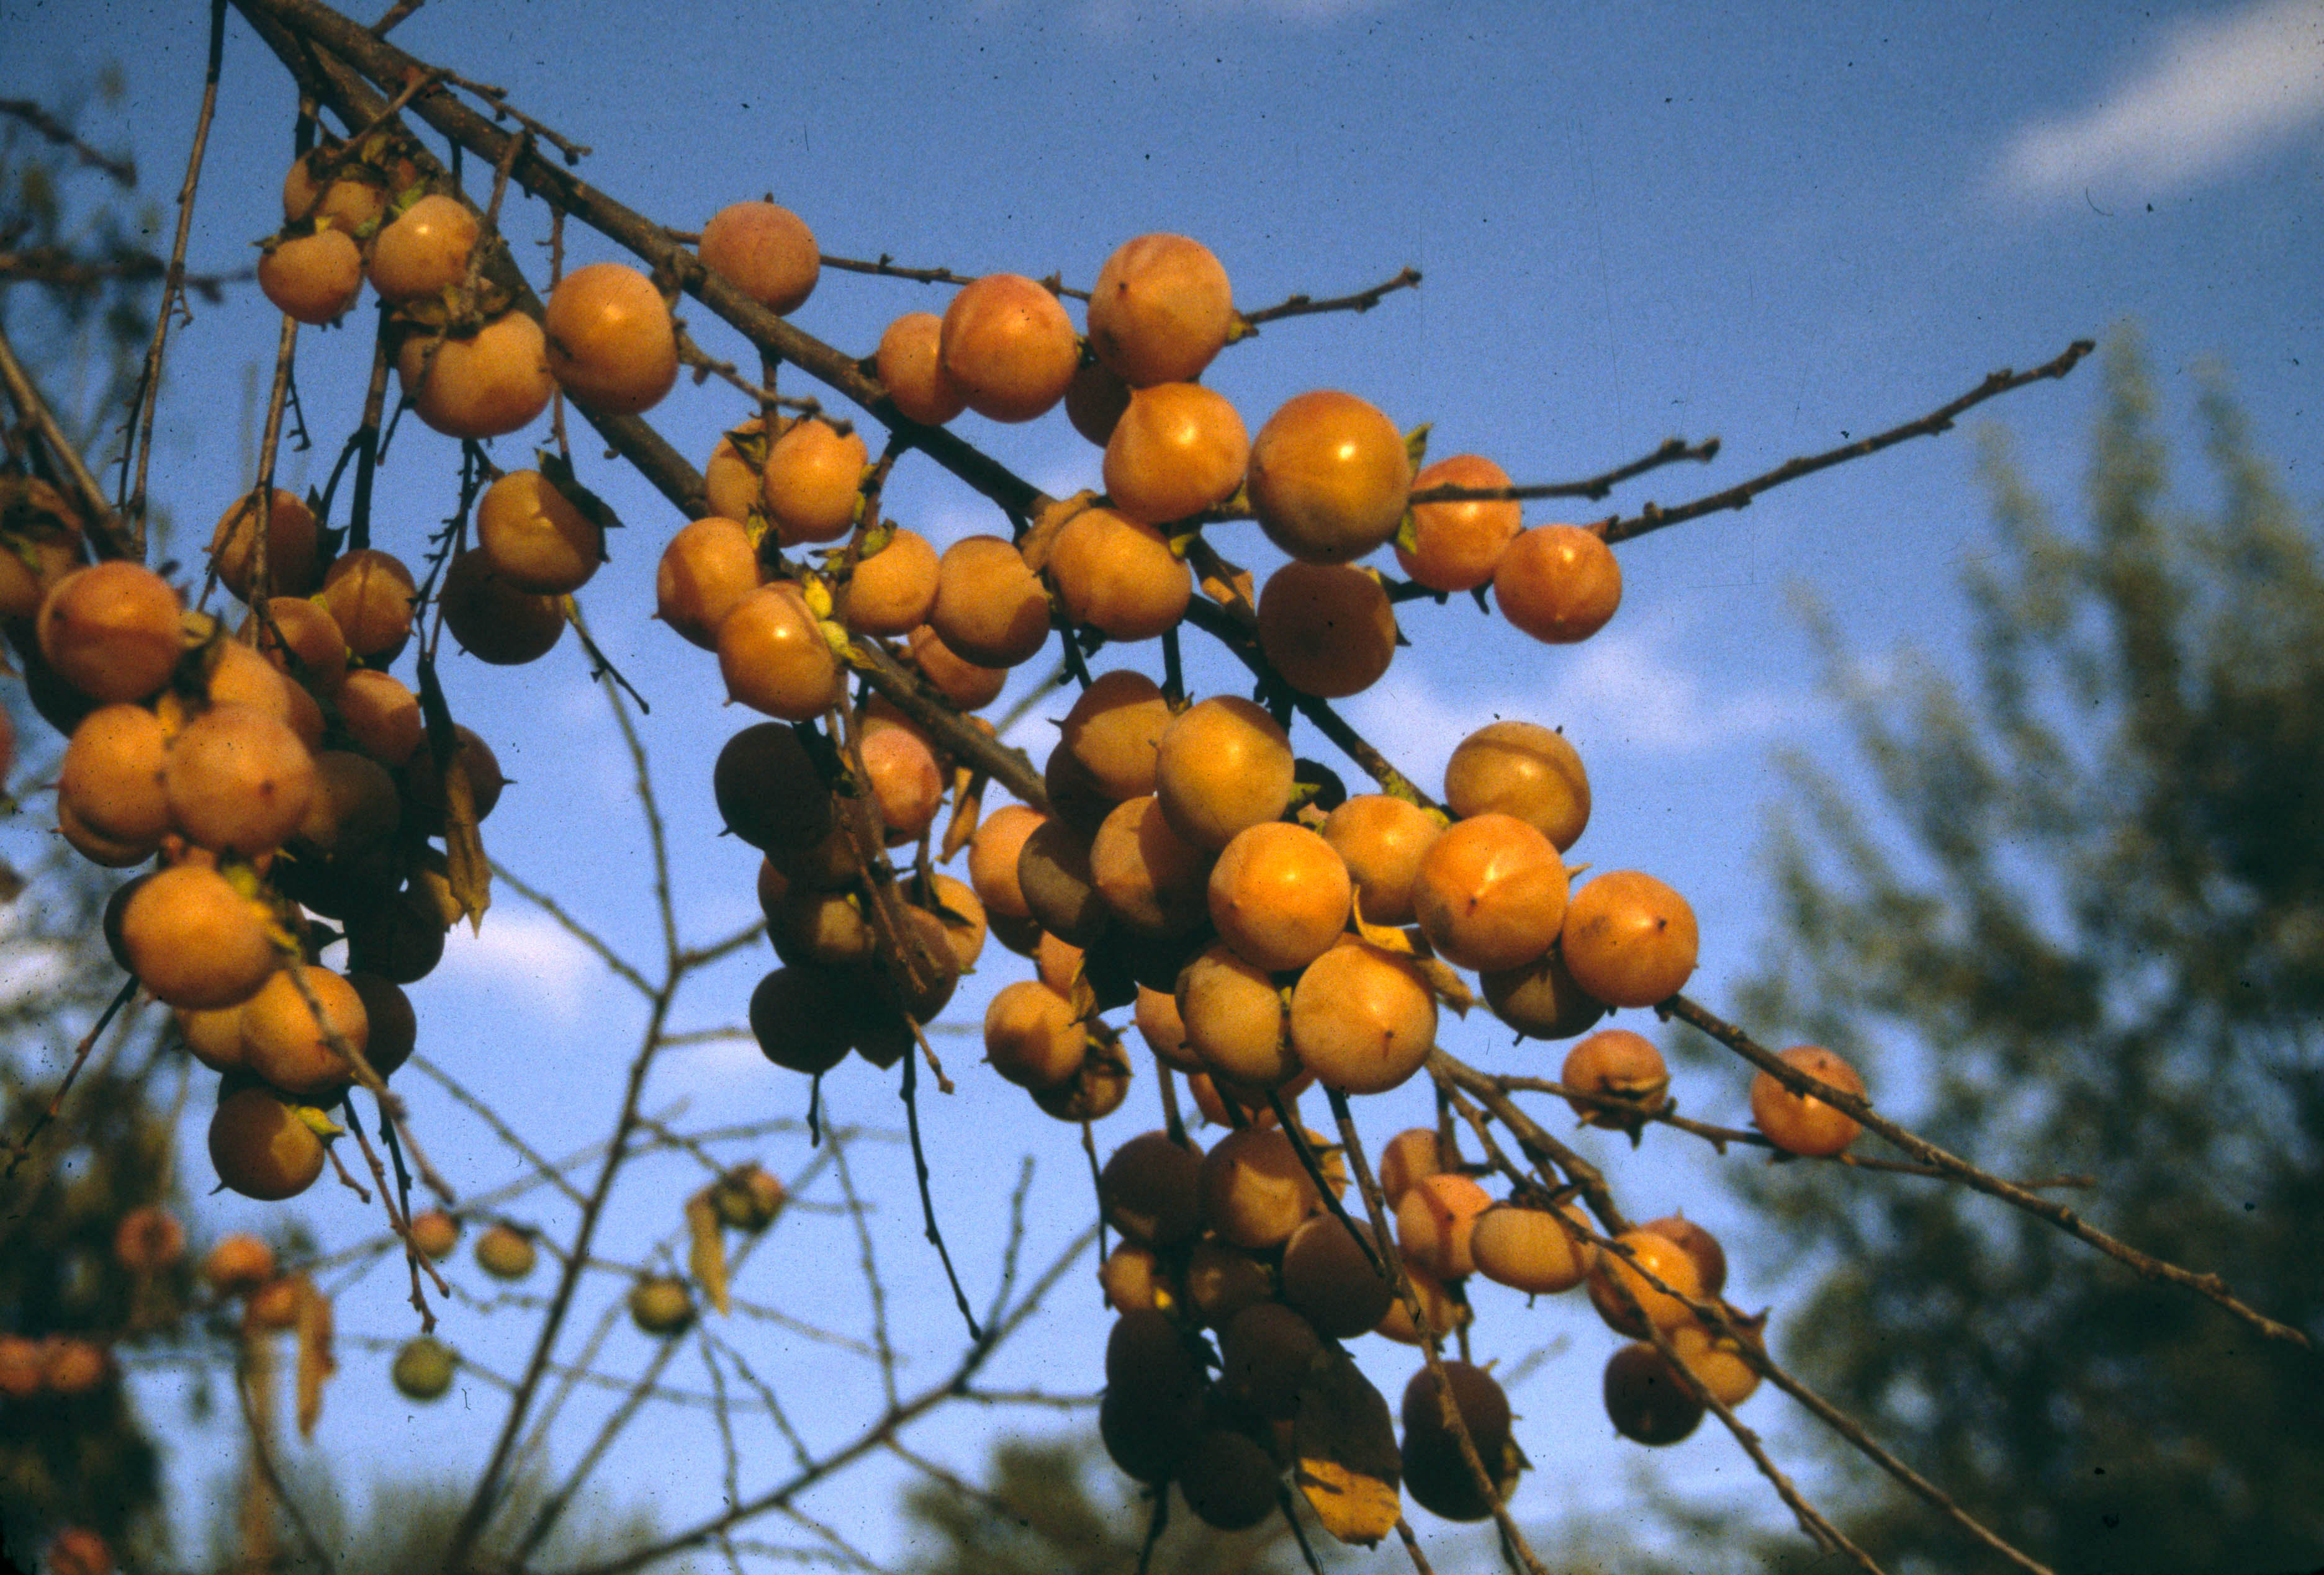 Szukis persimmons ready to eat even from leafless branches